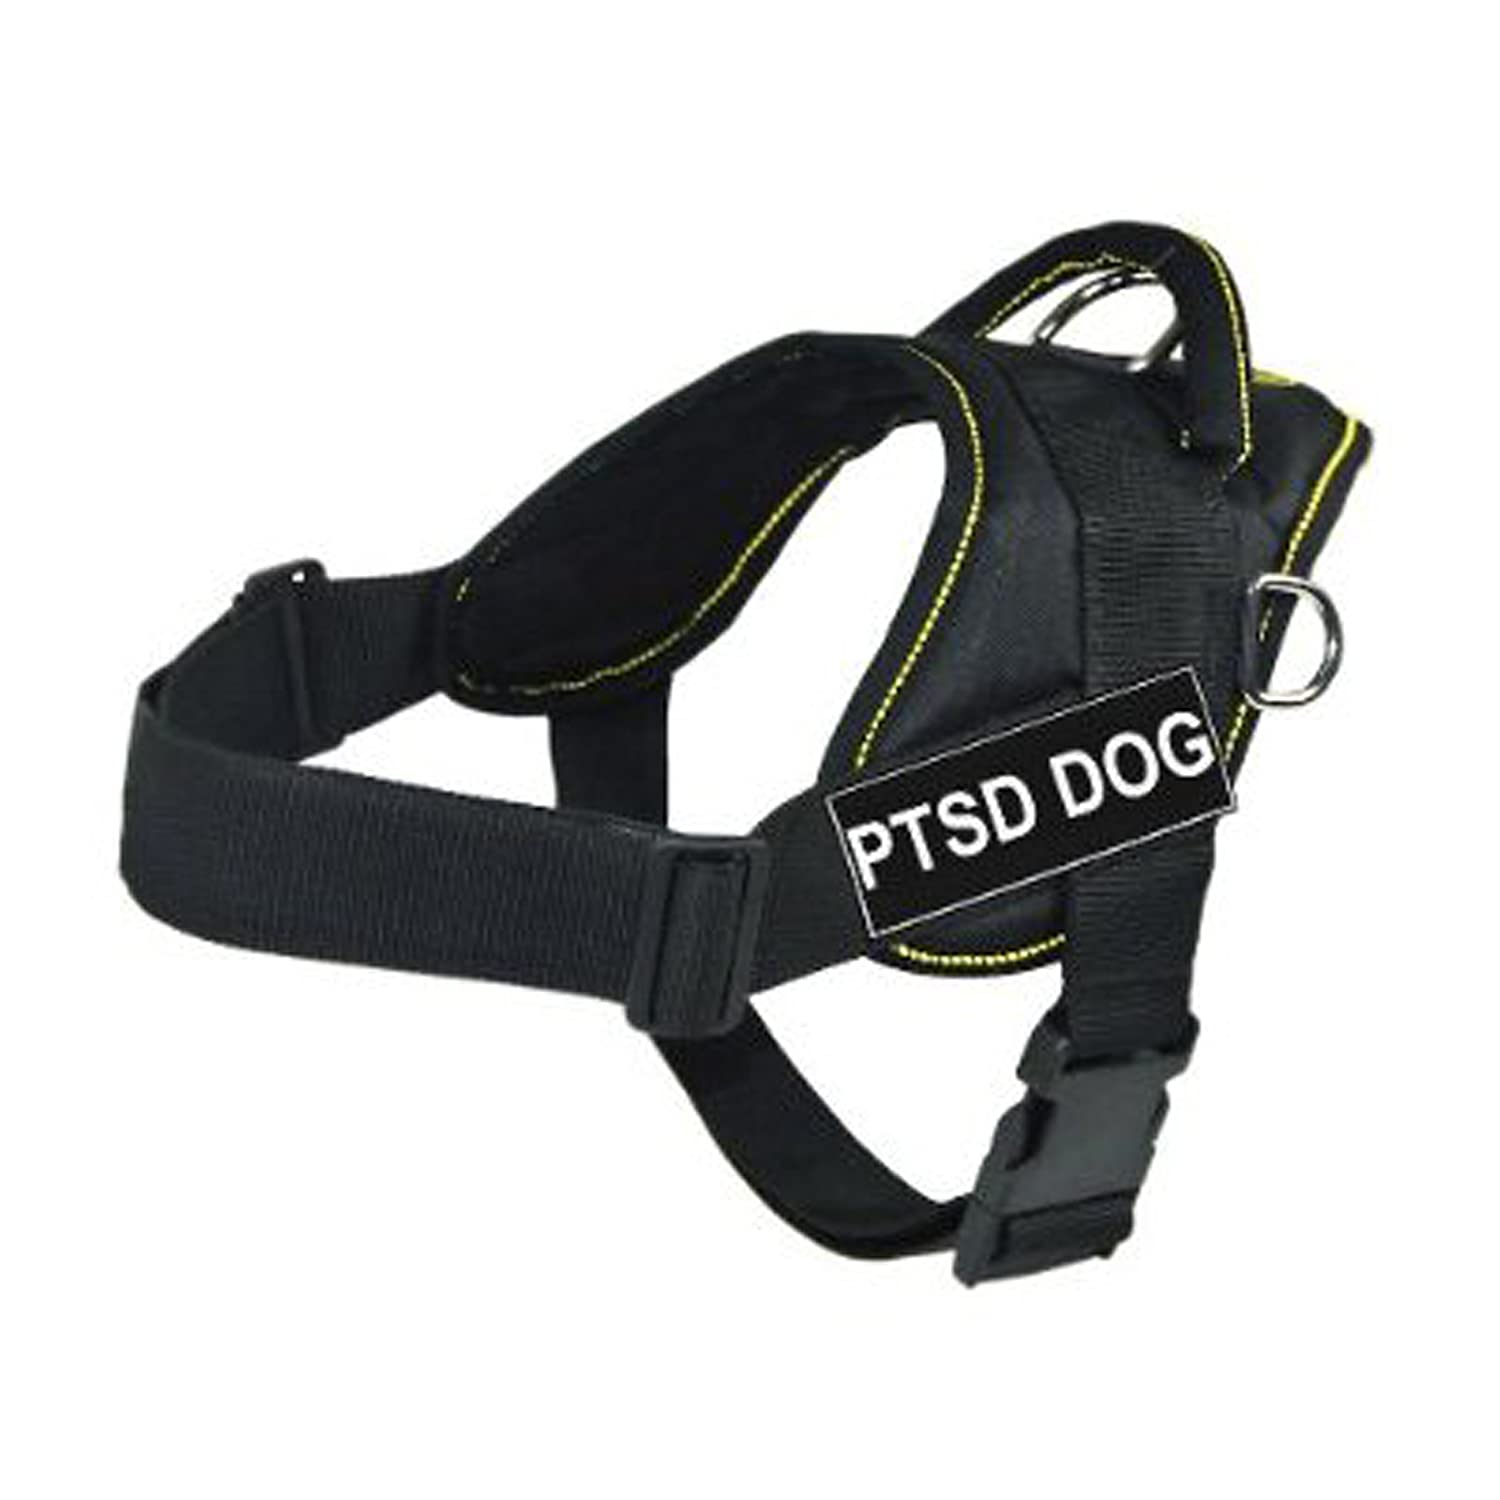 Dean & Tyler Fun Works Harness, PTSD Dog, Black with Yellow Trim, Large, Fits Girth Size  32-Inch to 42-Inch